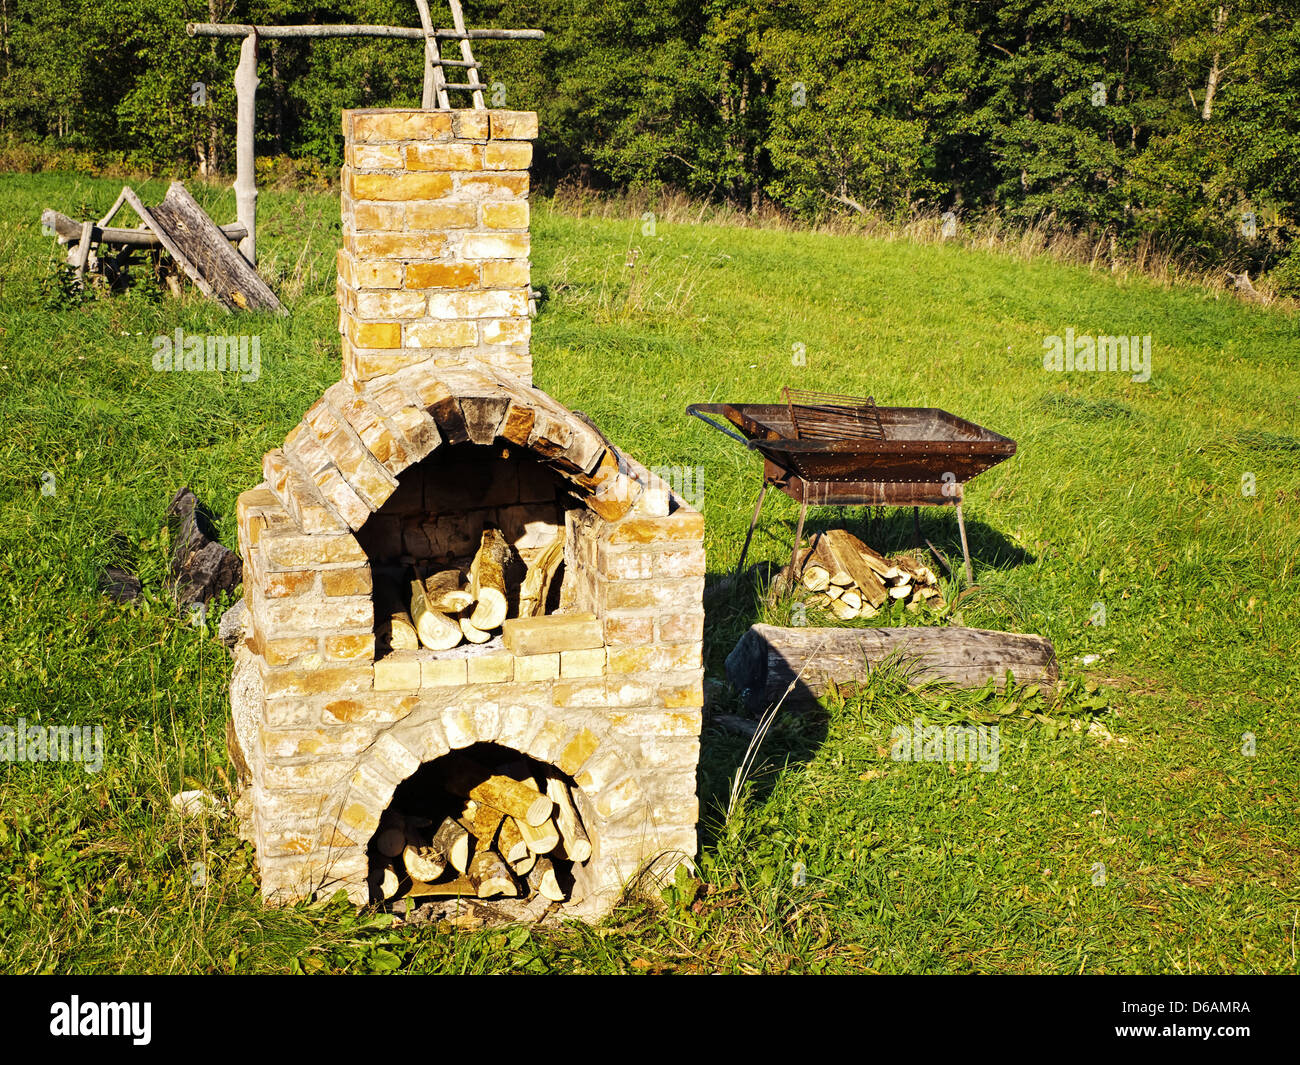 old stove - Stock Image